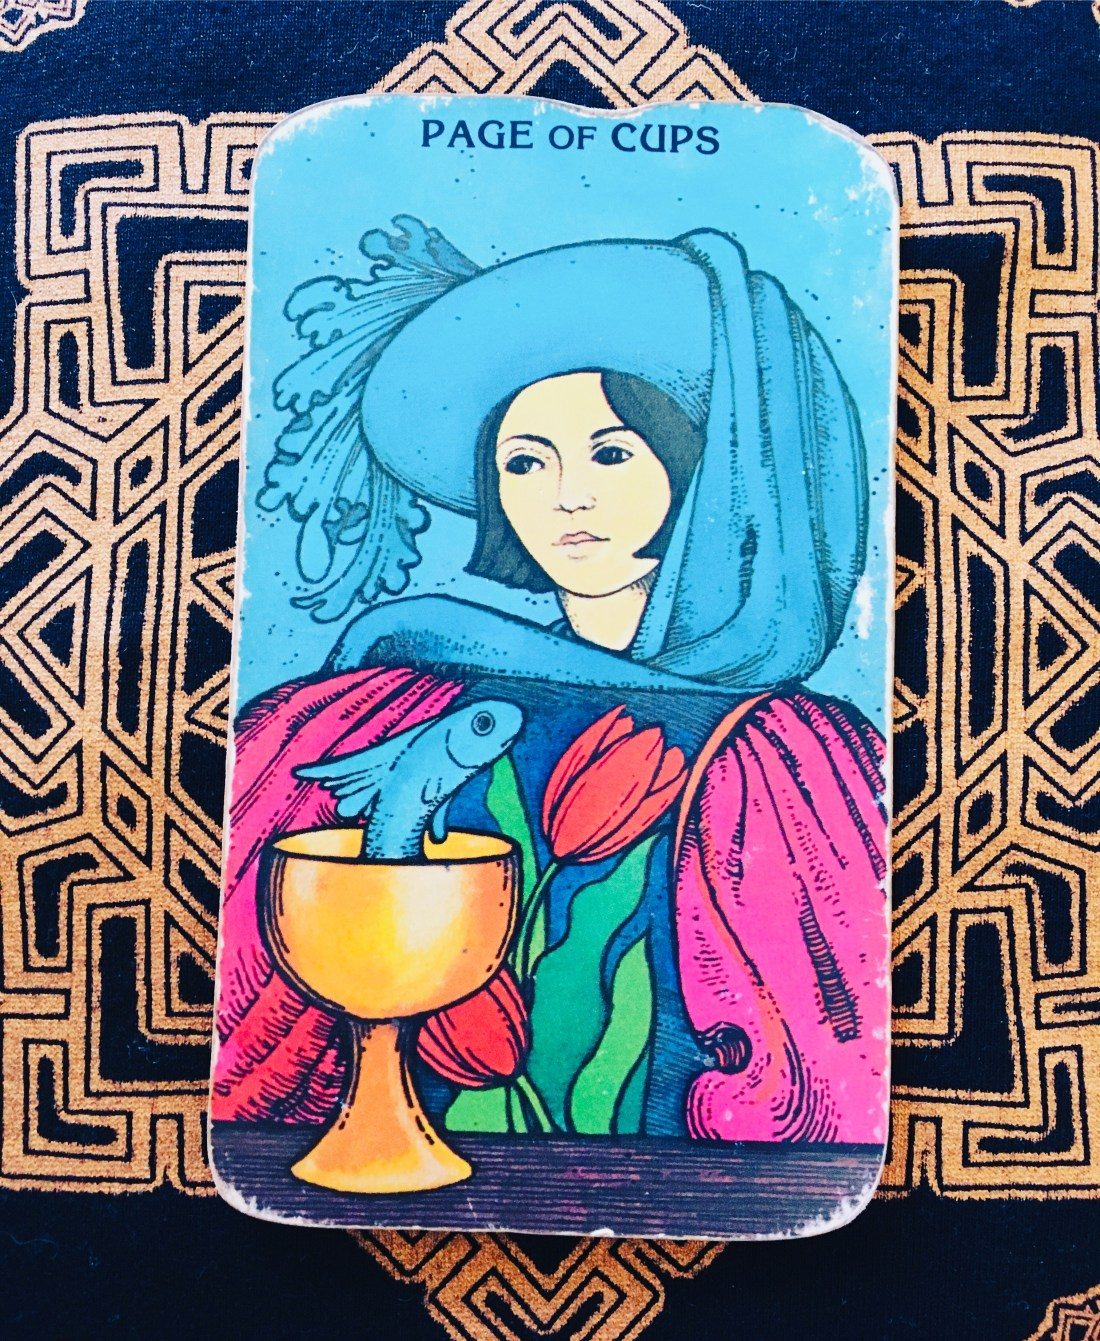 Page of Cups tarot card, and life is an adventure